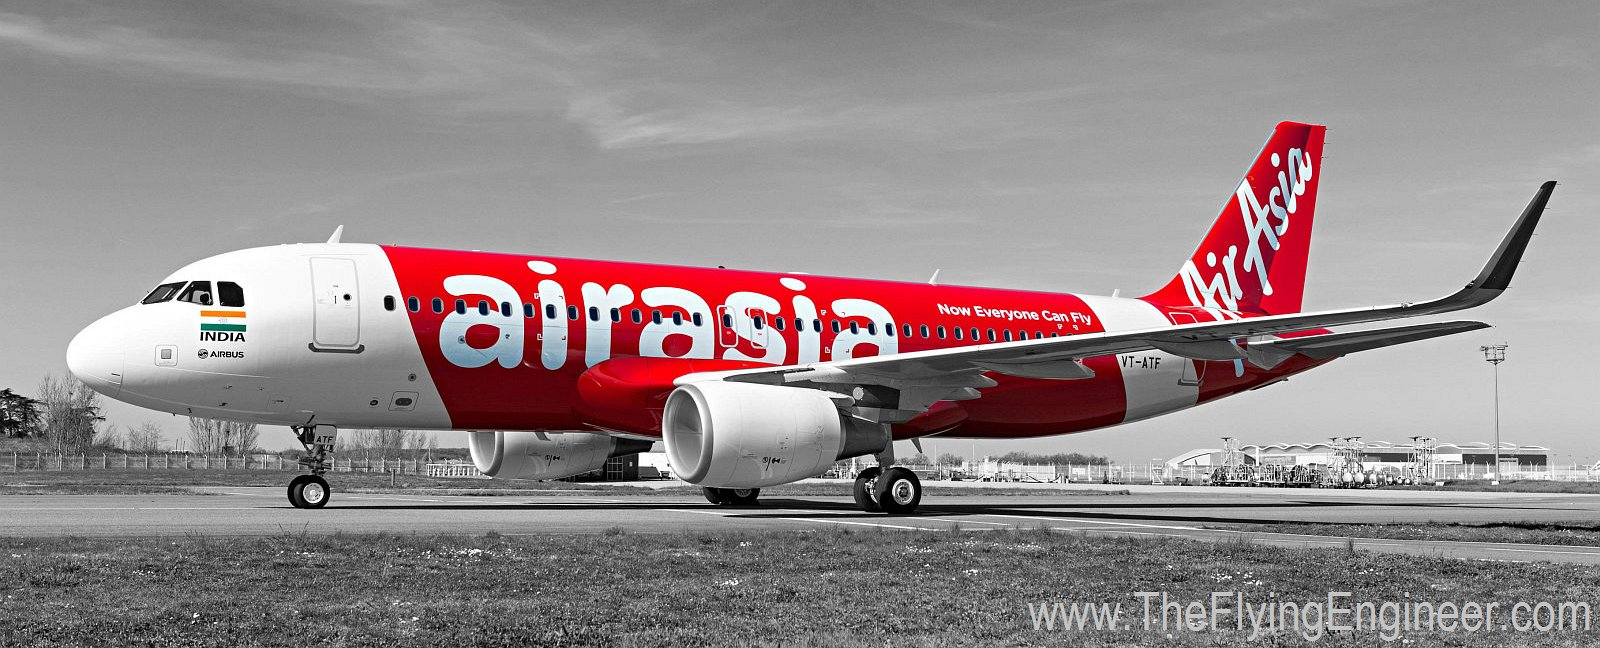 Airasia India And The Competition Gets Real The Flying Engineer